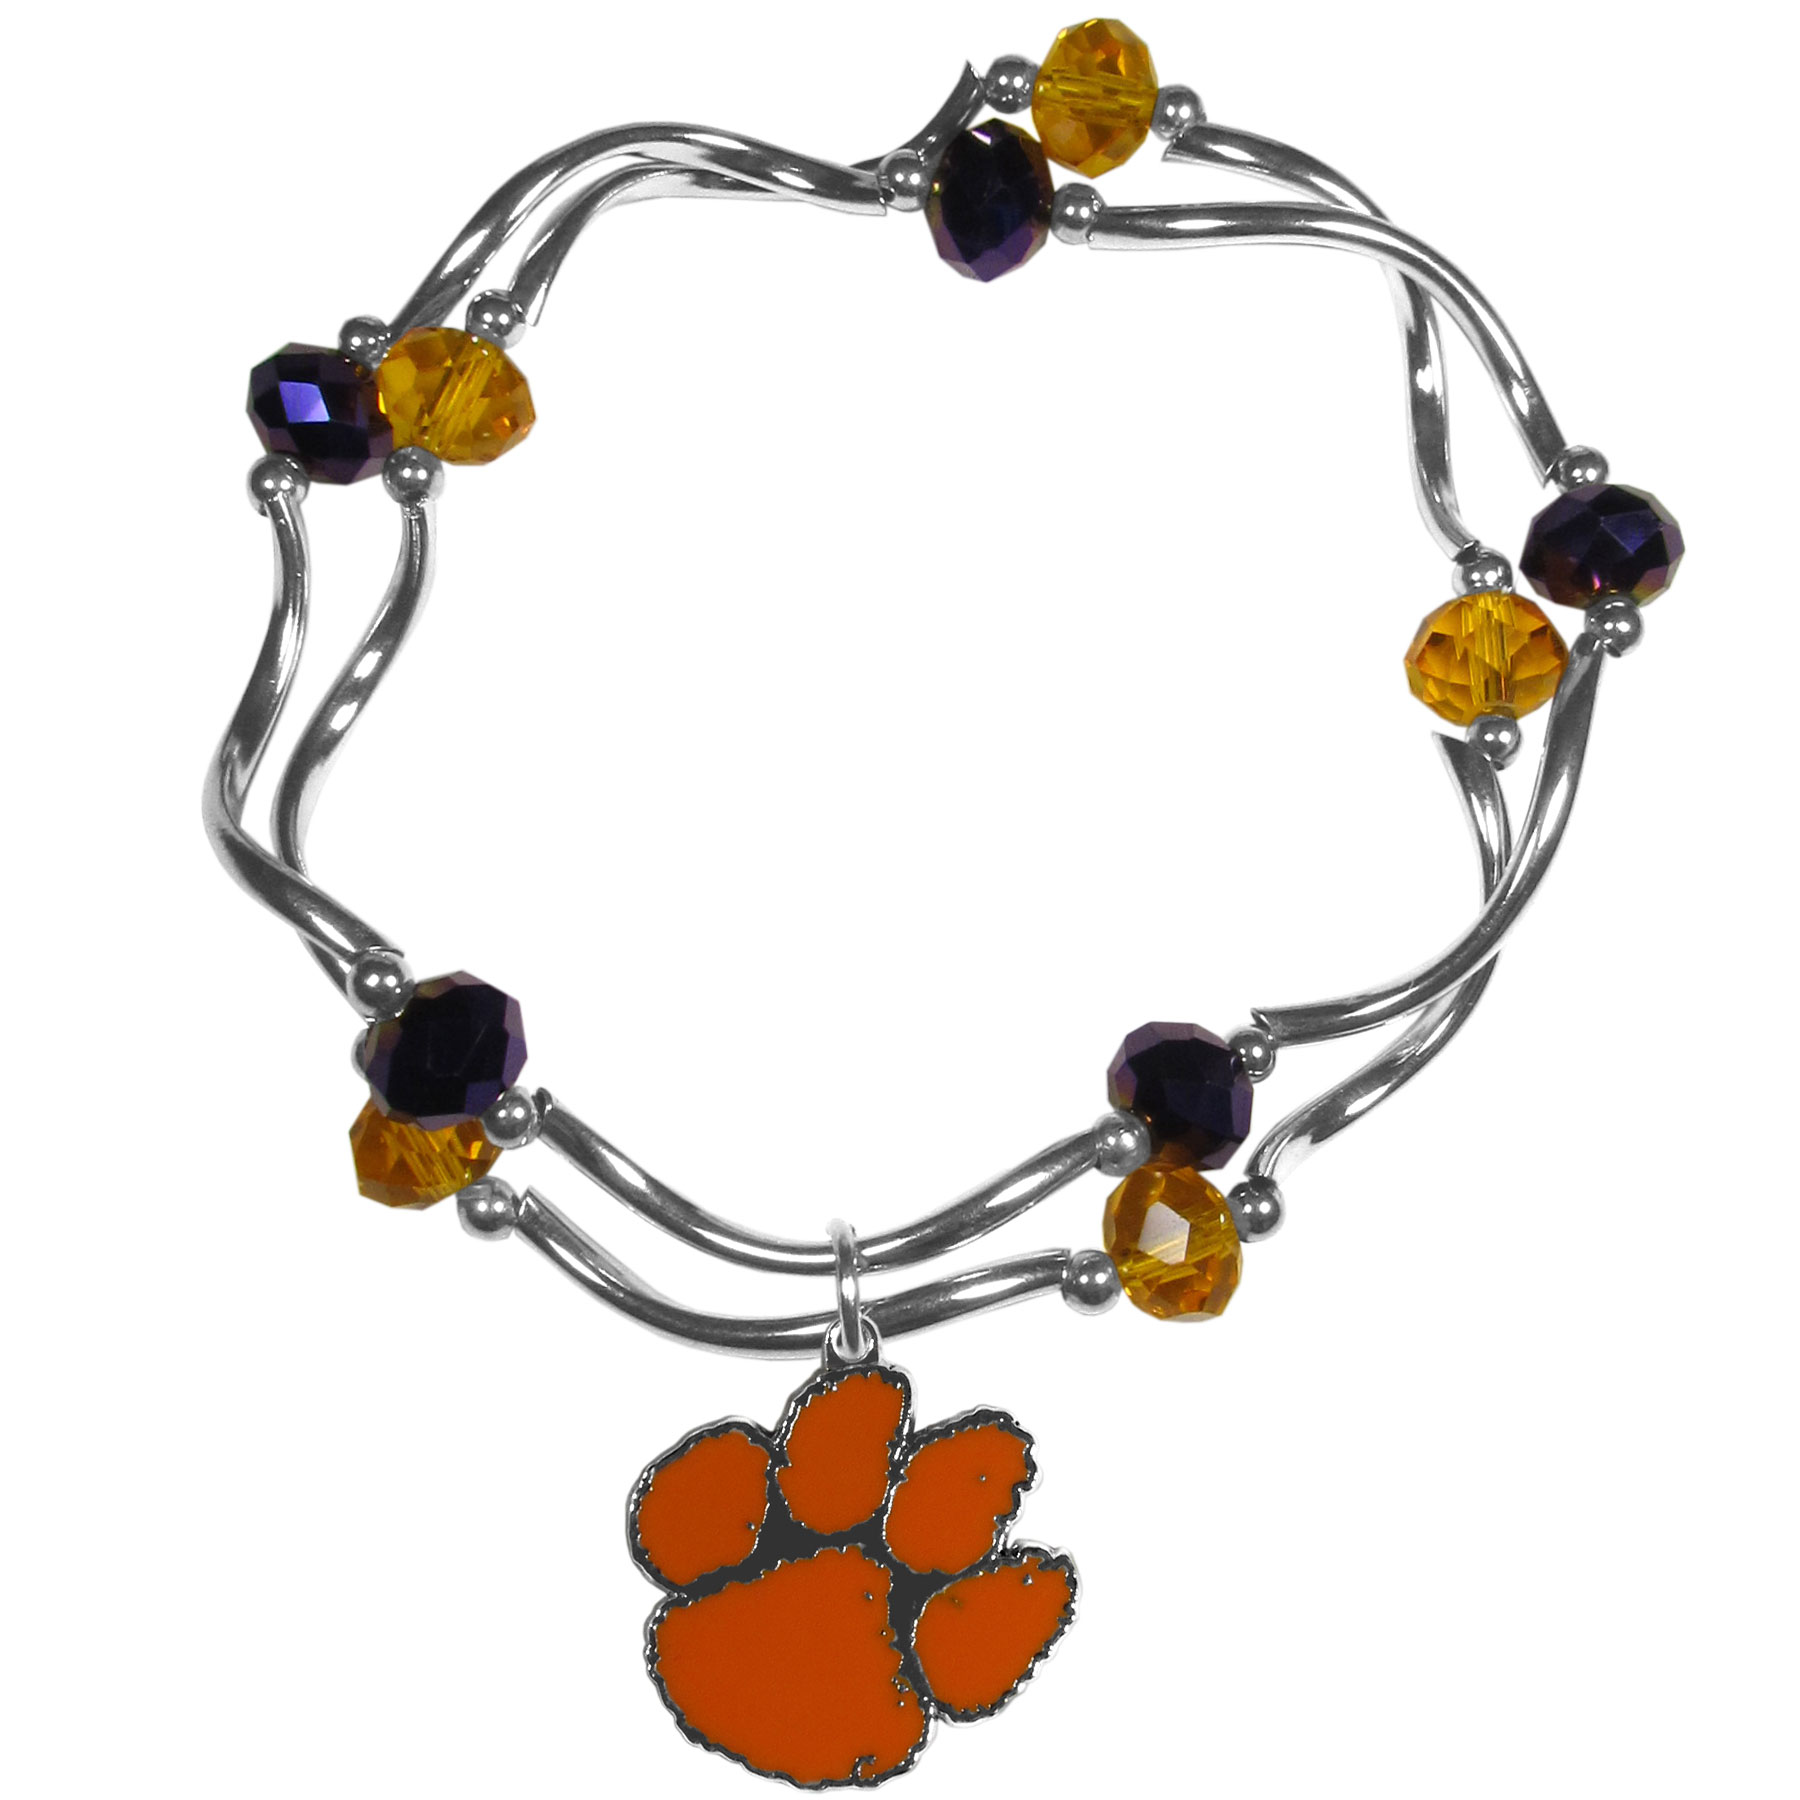 Clemson Tigers Crystal Bead Bracelet - This delicate bead bracelet has eye-catching team colored beads that are strung on 2 stretch cords that provide a comfortable and easy fit. The crystals are separated by beautiful helix beads in high polish chrome for a truly designer inspired look. The 2 strands of beads intertwine for a fun and stylish bracelet. This chic accessory is finished off with a Clemson Tigers team charm that has expertly carved detail and an enameled color finish. A contemporary look to thrill any female sports fan. Whether this a gift for yourself or someone special you cannot miss with this trend-setting fashion bracelet.